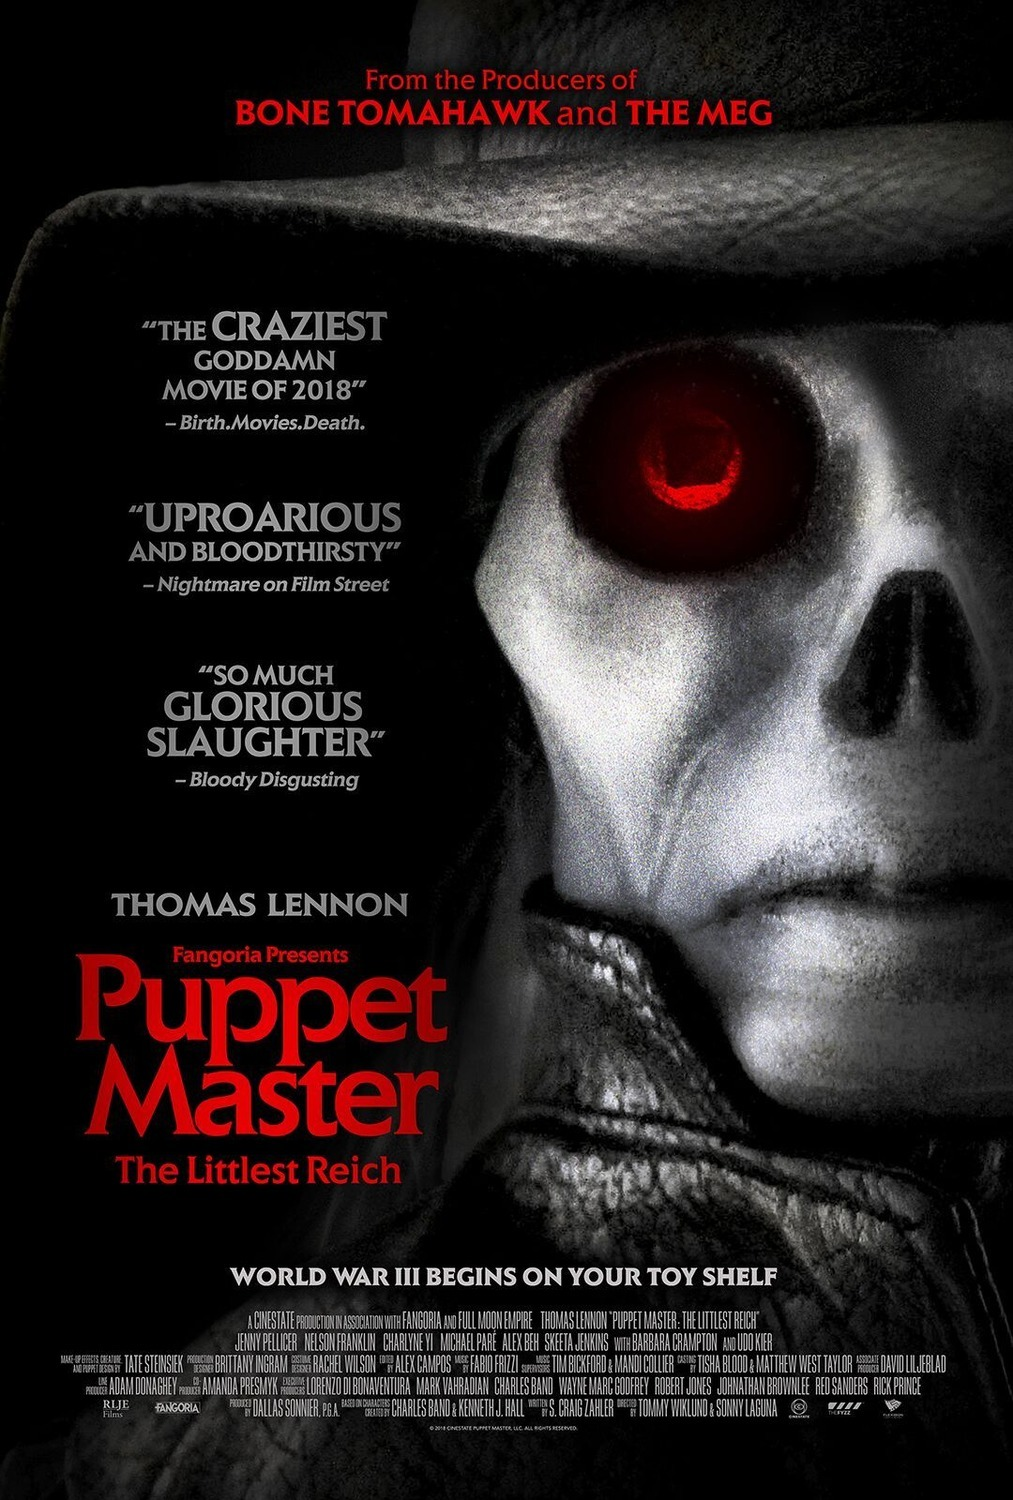 Puppet Master: The Littlest Reich (2018) - Directed by: Sonny Lennon, Tommy WiklundStarring: Thomas Lennon, Nelson Franklin, Jenny Pellicer, Charlyne YiRated: NR (Suggested R for Strong Graphic Violence, Sexual Content and Nudity, and Language- All Involving Puppets)Running Time: 1 h 30 mTMM Score: 2 stars out of 5STRENGTHS: Puppets, Practical Effect, ConceptWEAKNESSES: Writing, Acting, Story, Tone